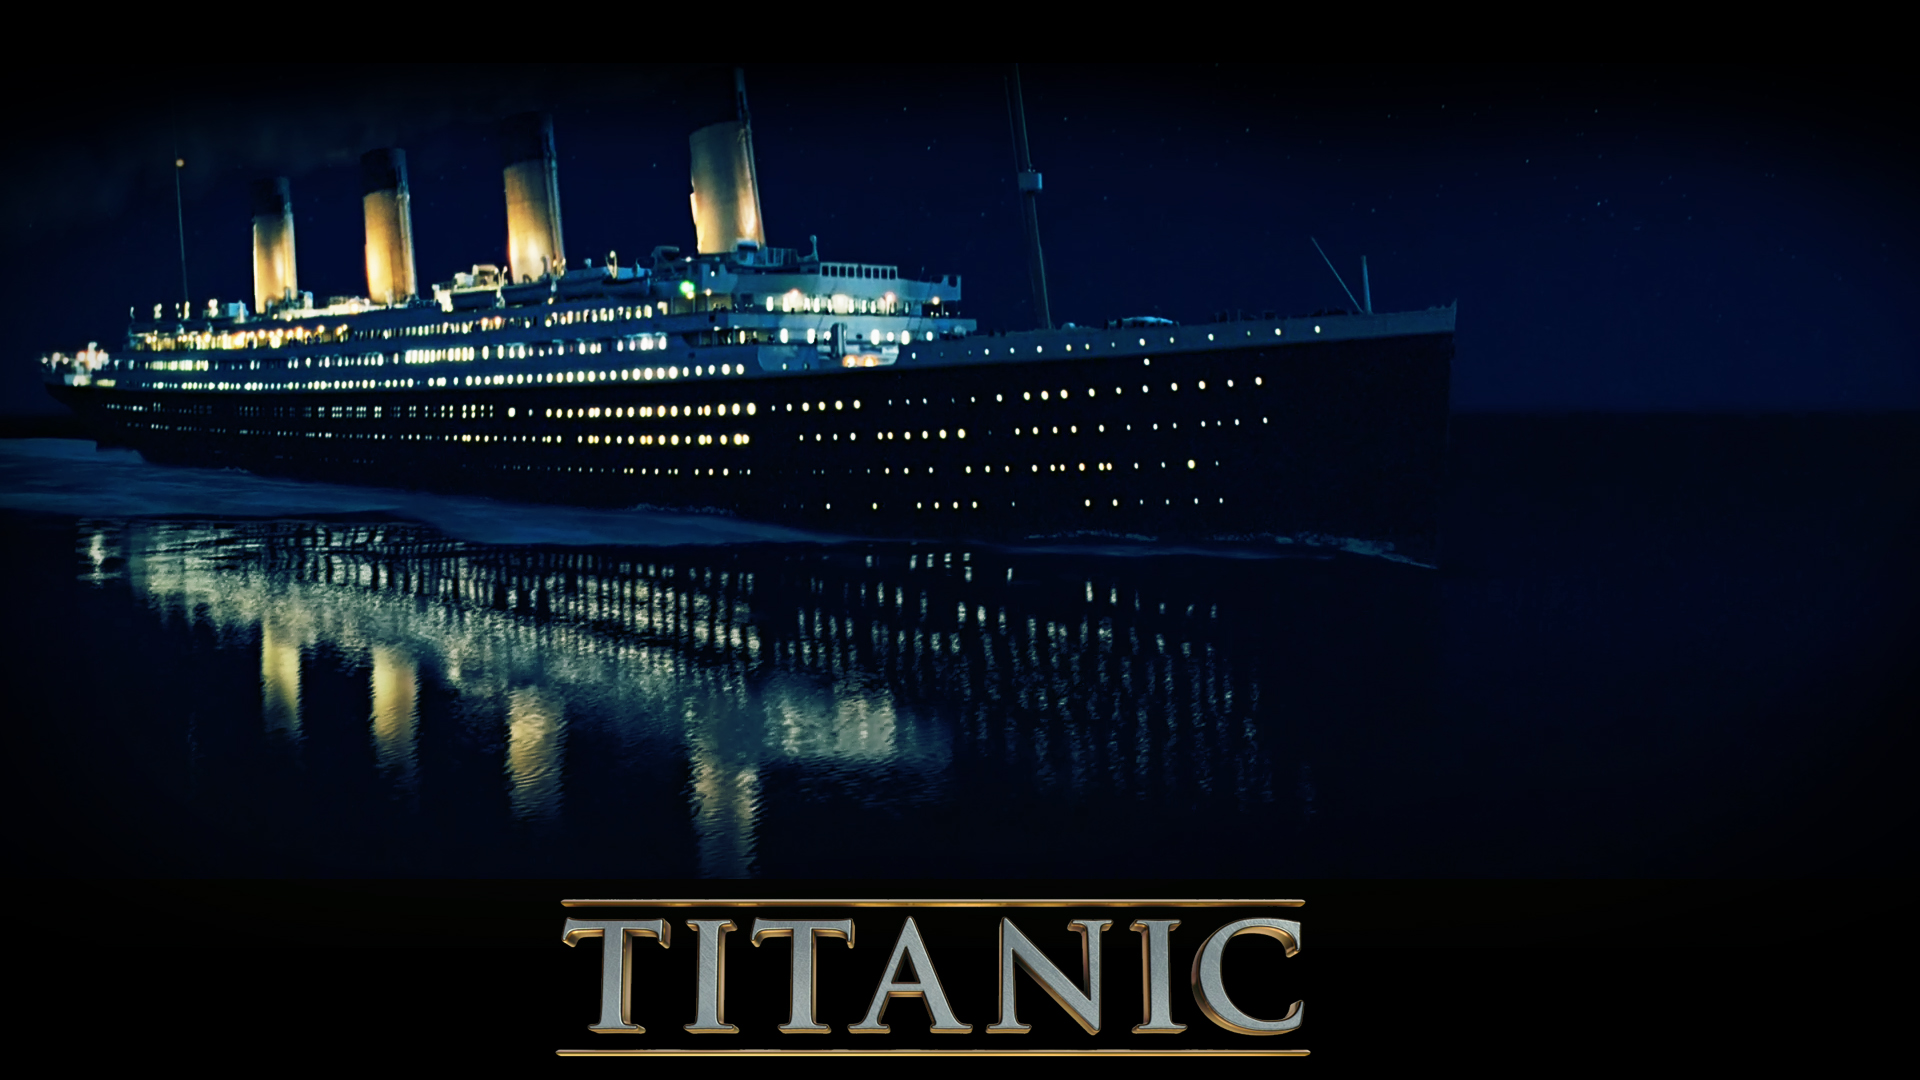 a short critique of the titanic a film by james cameron Writer-director james cameron employed state-of-the-art digital special effects for this production full review desmond ryan but had the film been cut by something like 20 or 30 minutes, it would have flowed a lot better titanic isn't james cameron's best film.